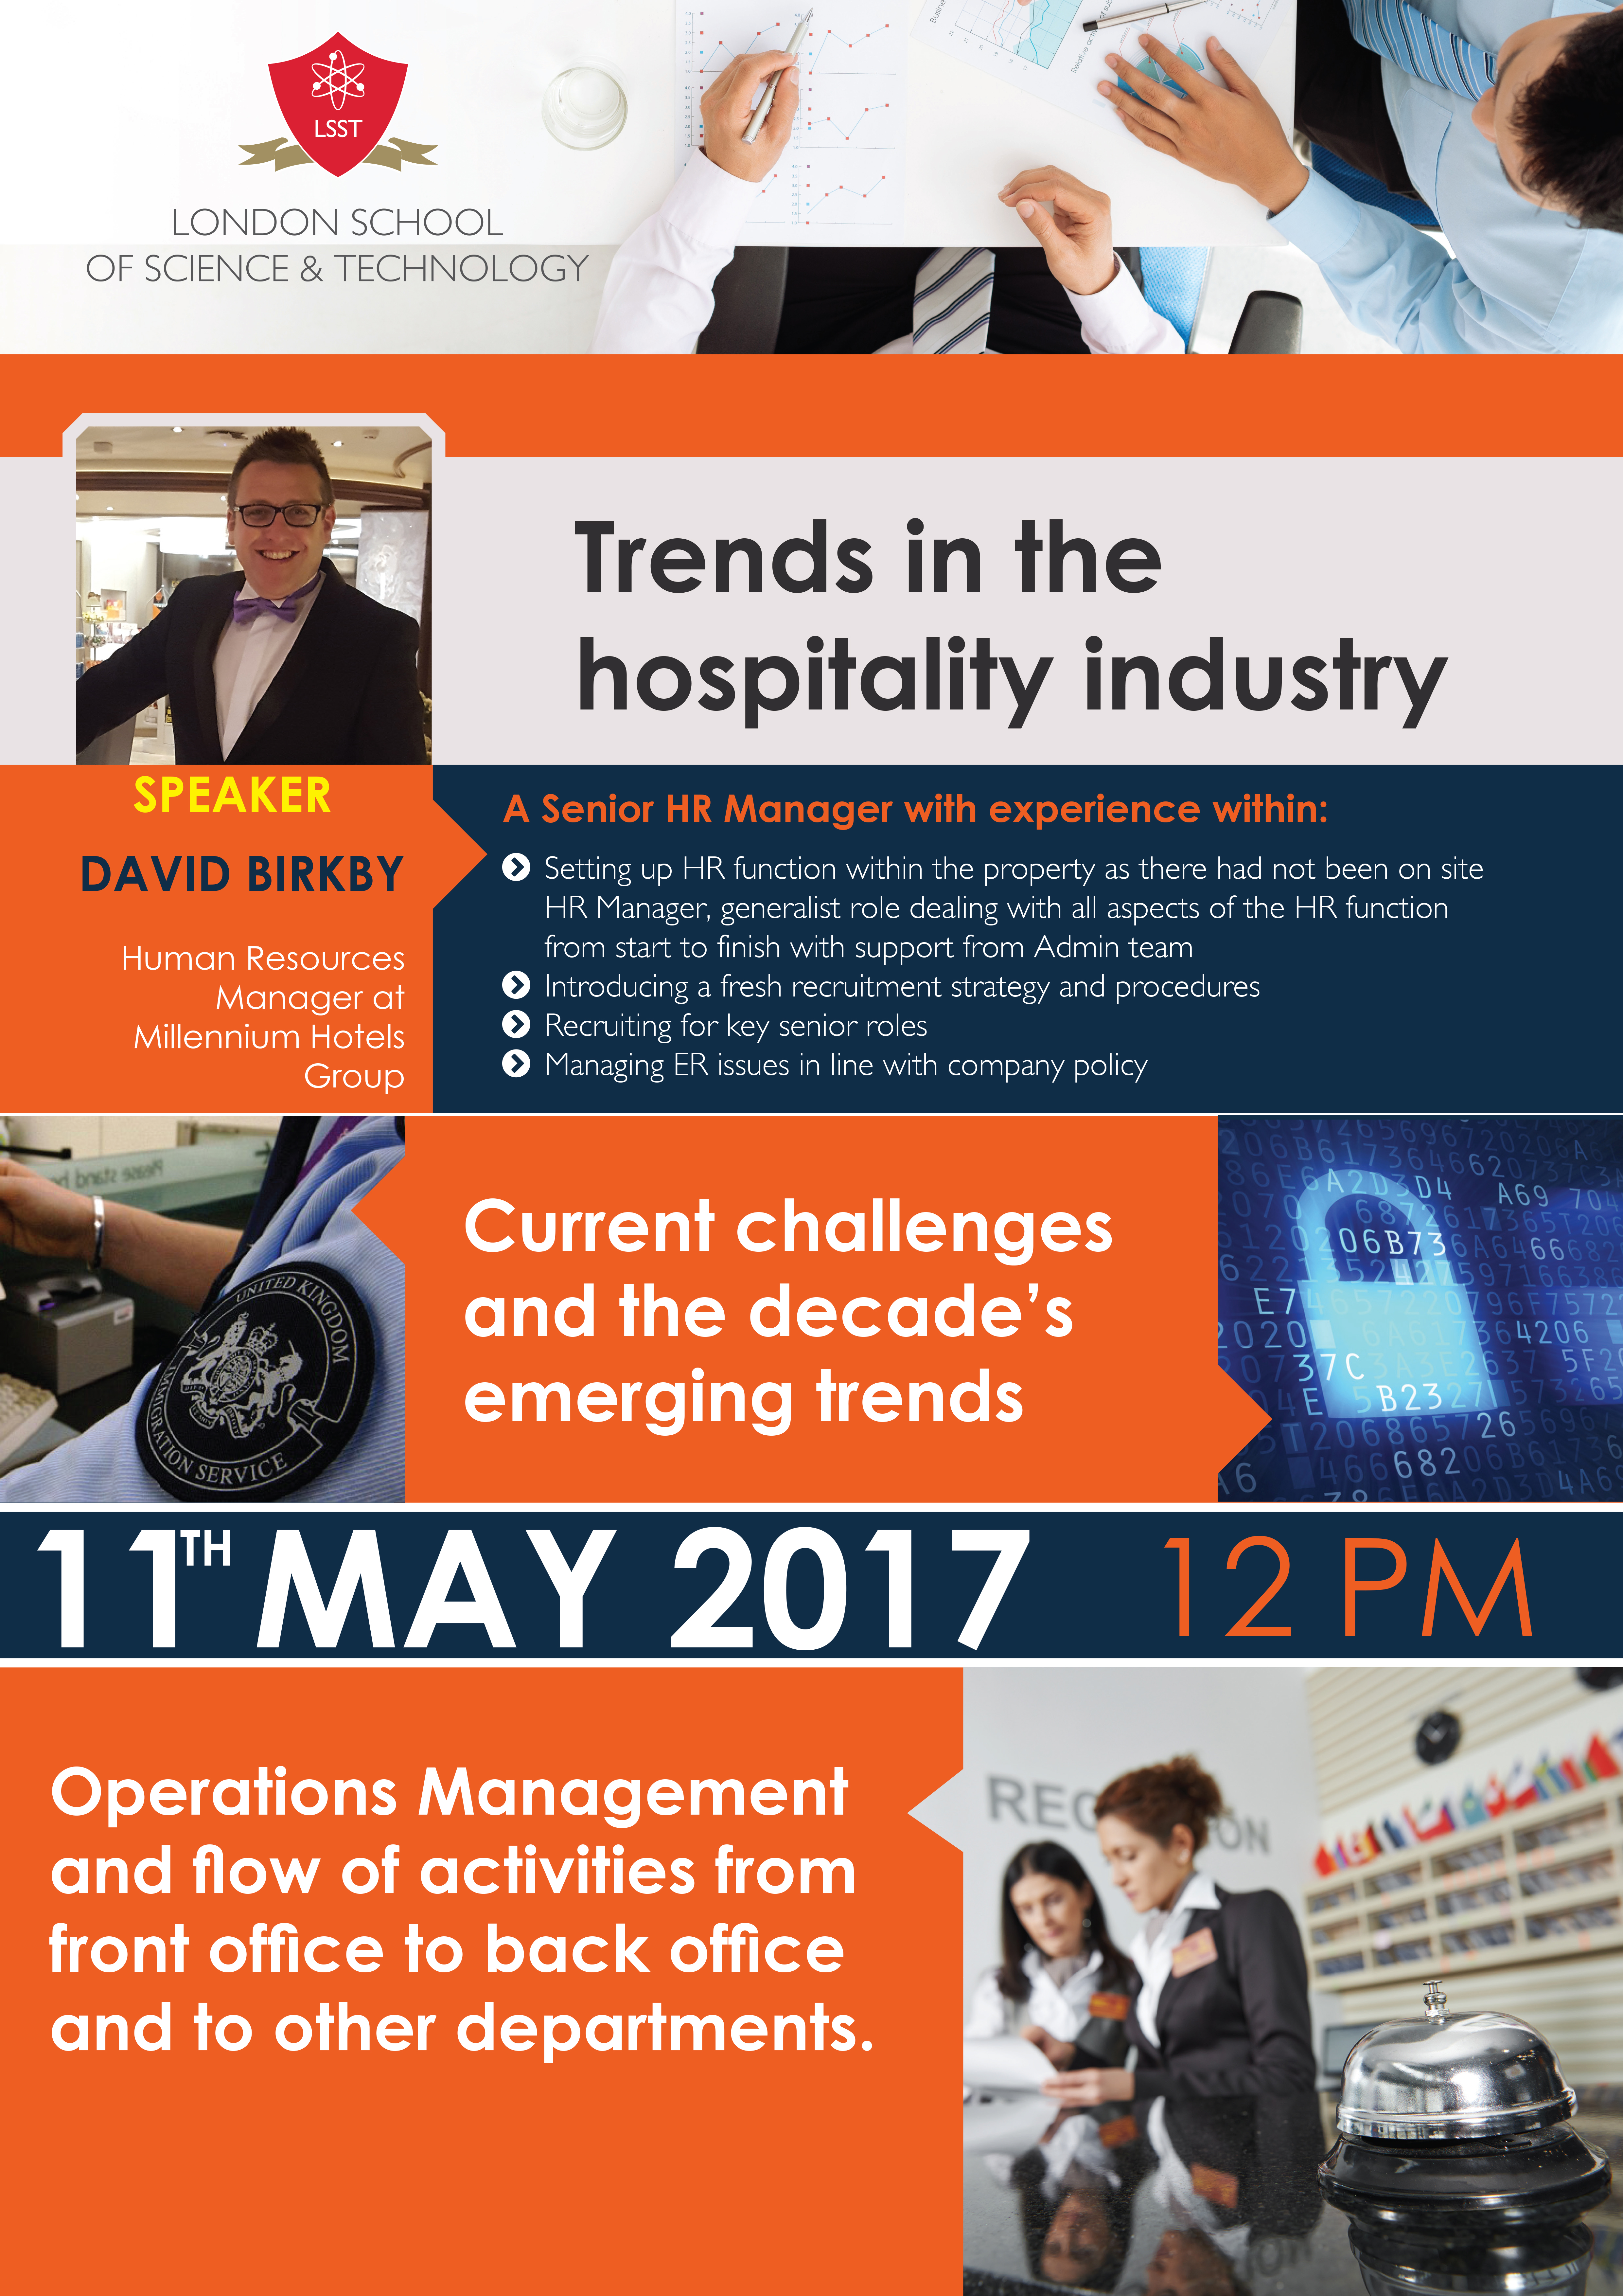 Trends in the hospitality industry